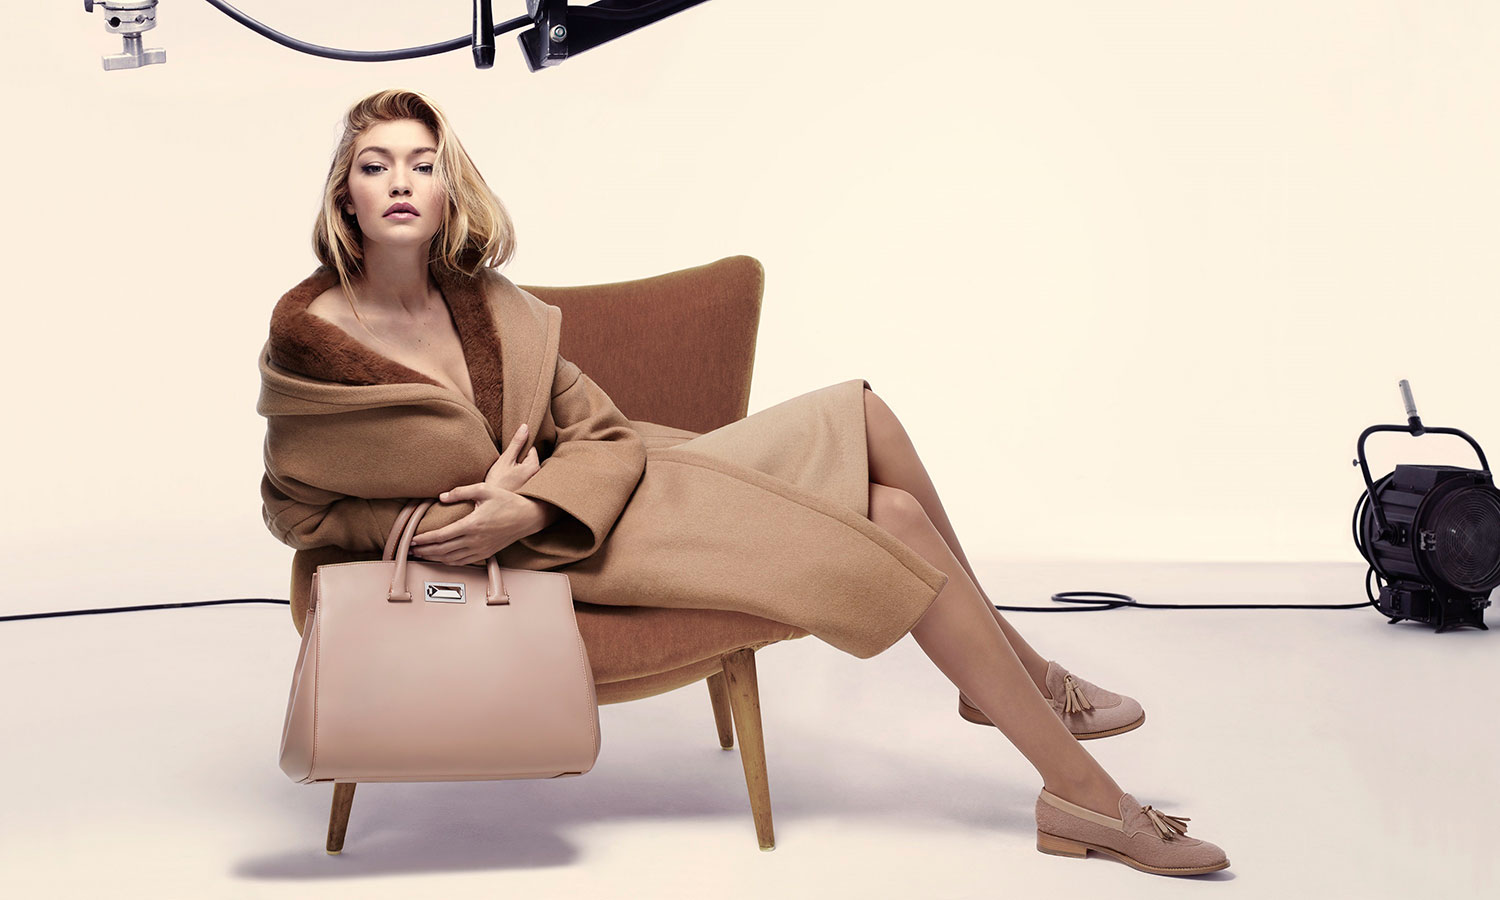 Gigi Hadid in Max Mara Fall/Winter 2015 campaign photographed by Anthony Maule